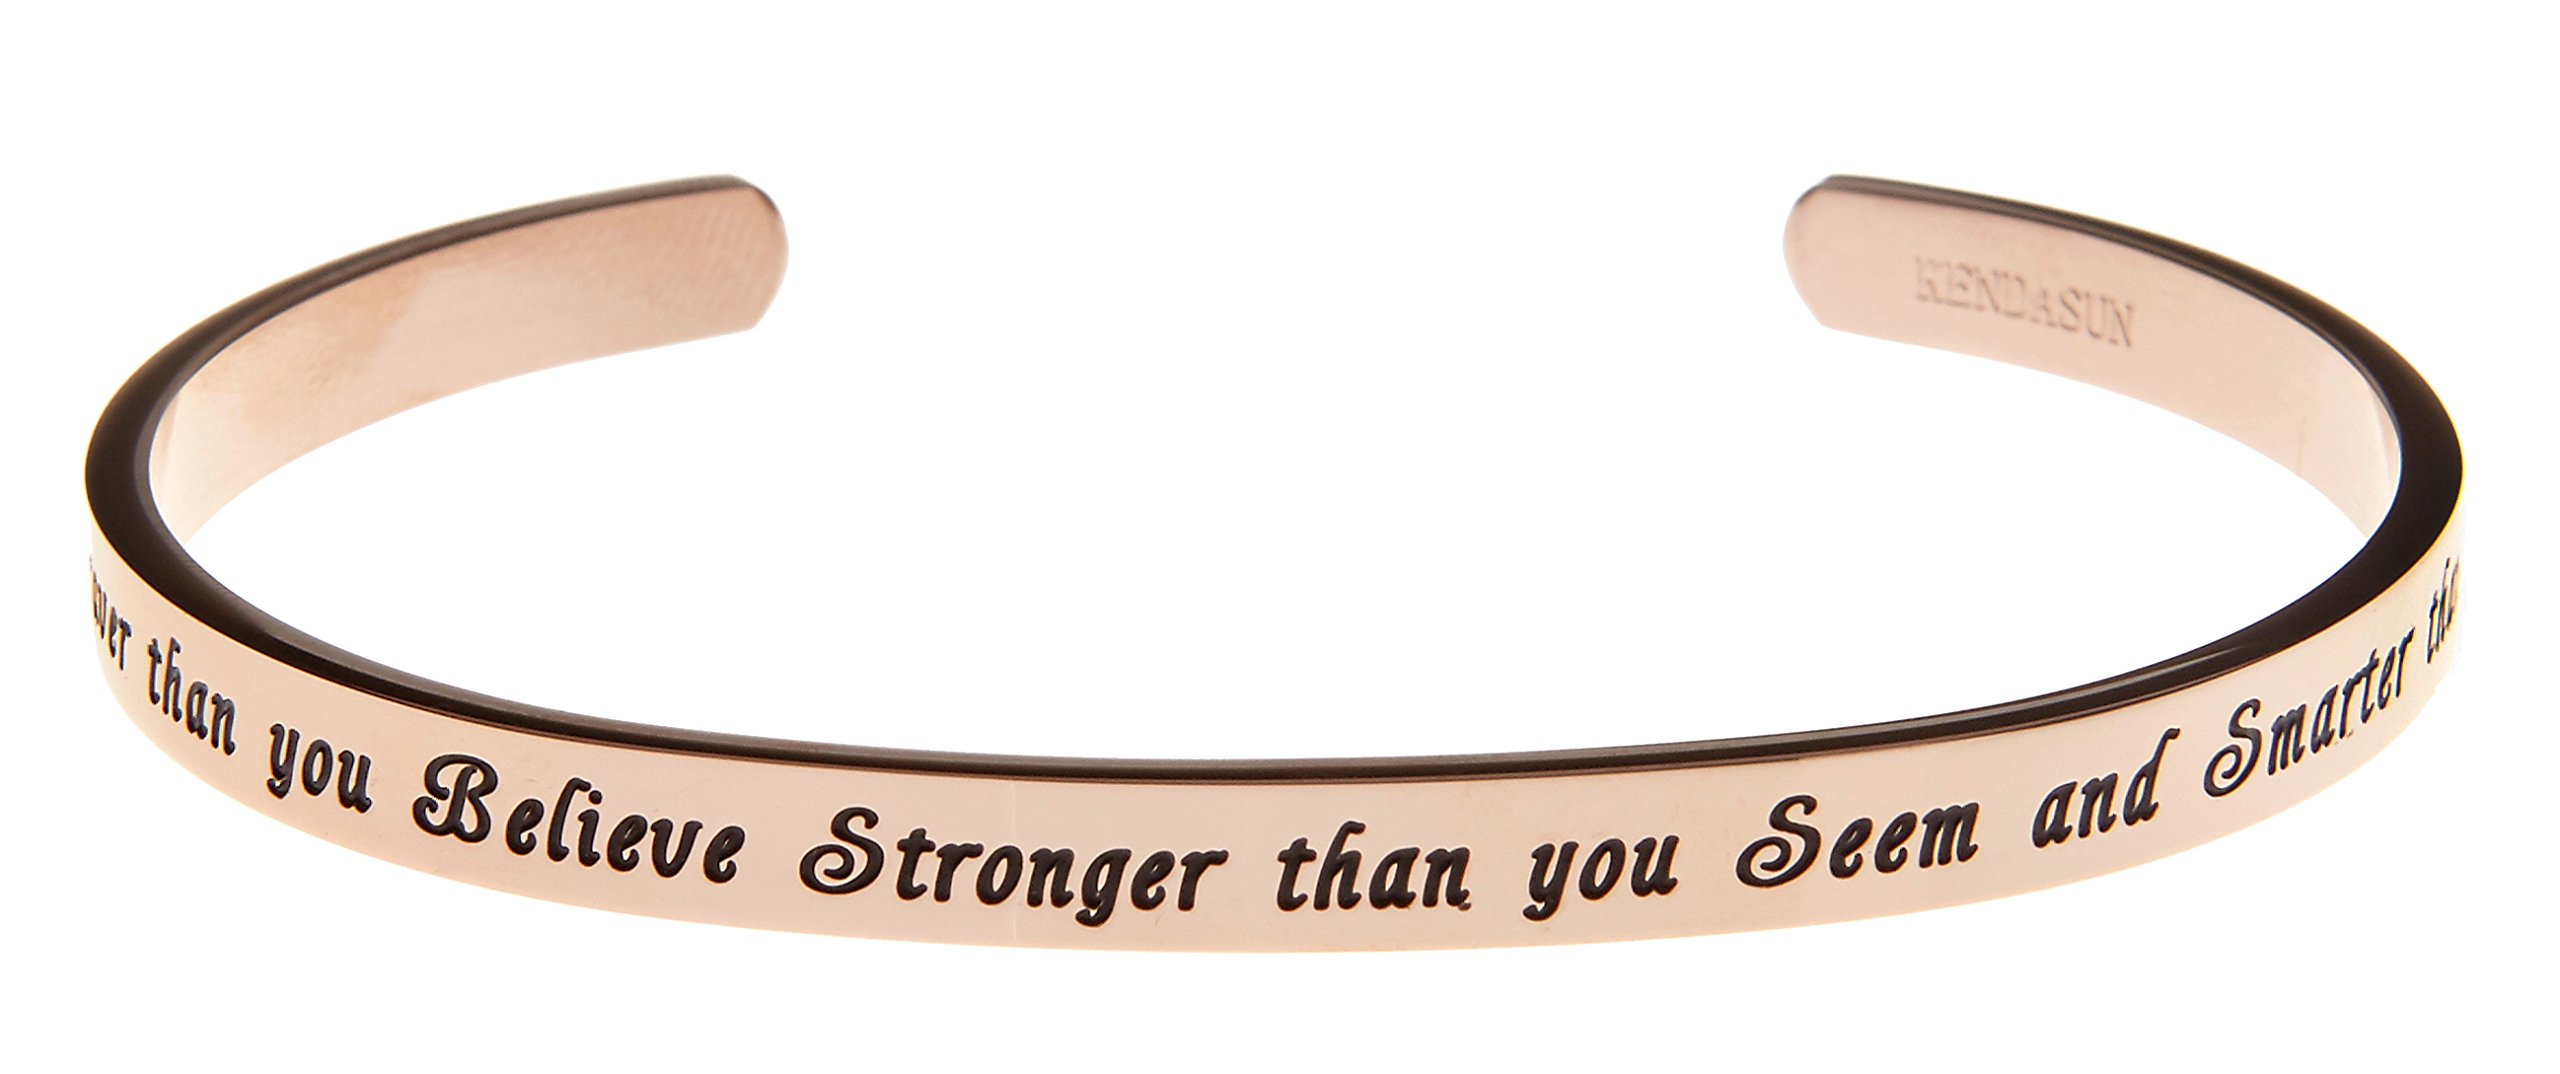 Kendasun Jewelry ''You are Braver than you Believe Stronger than you Seem and Smarter than you Think'' Cuff Bangle Bracelet (Rose Gold)